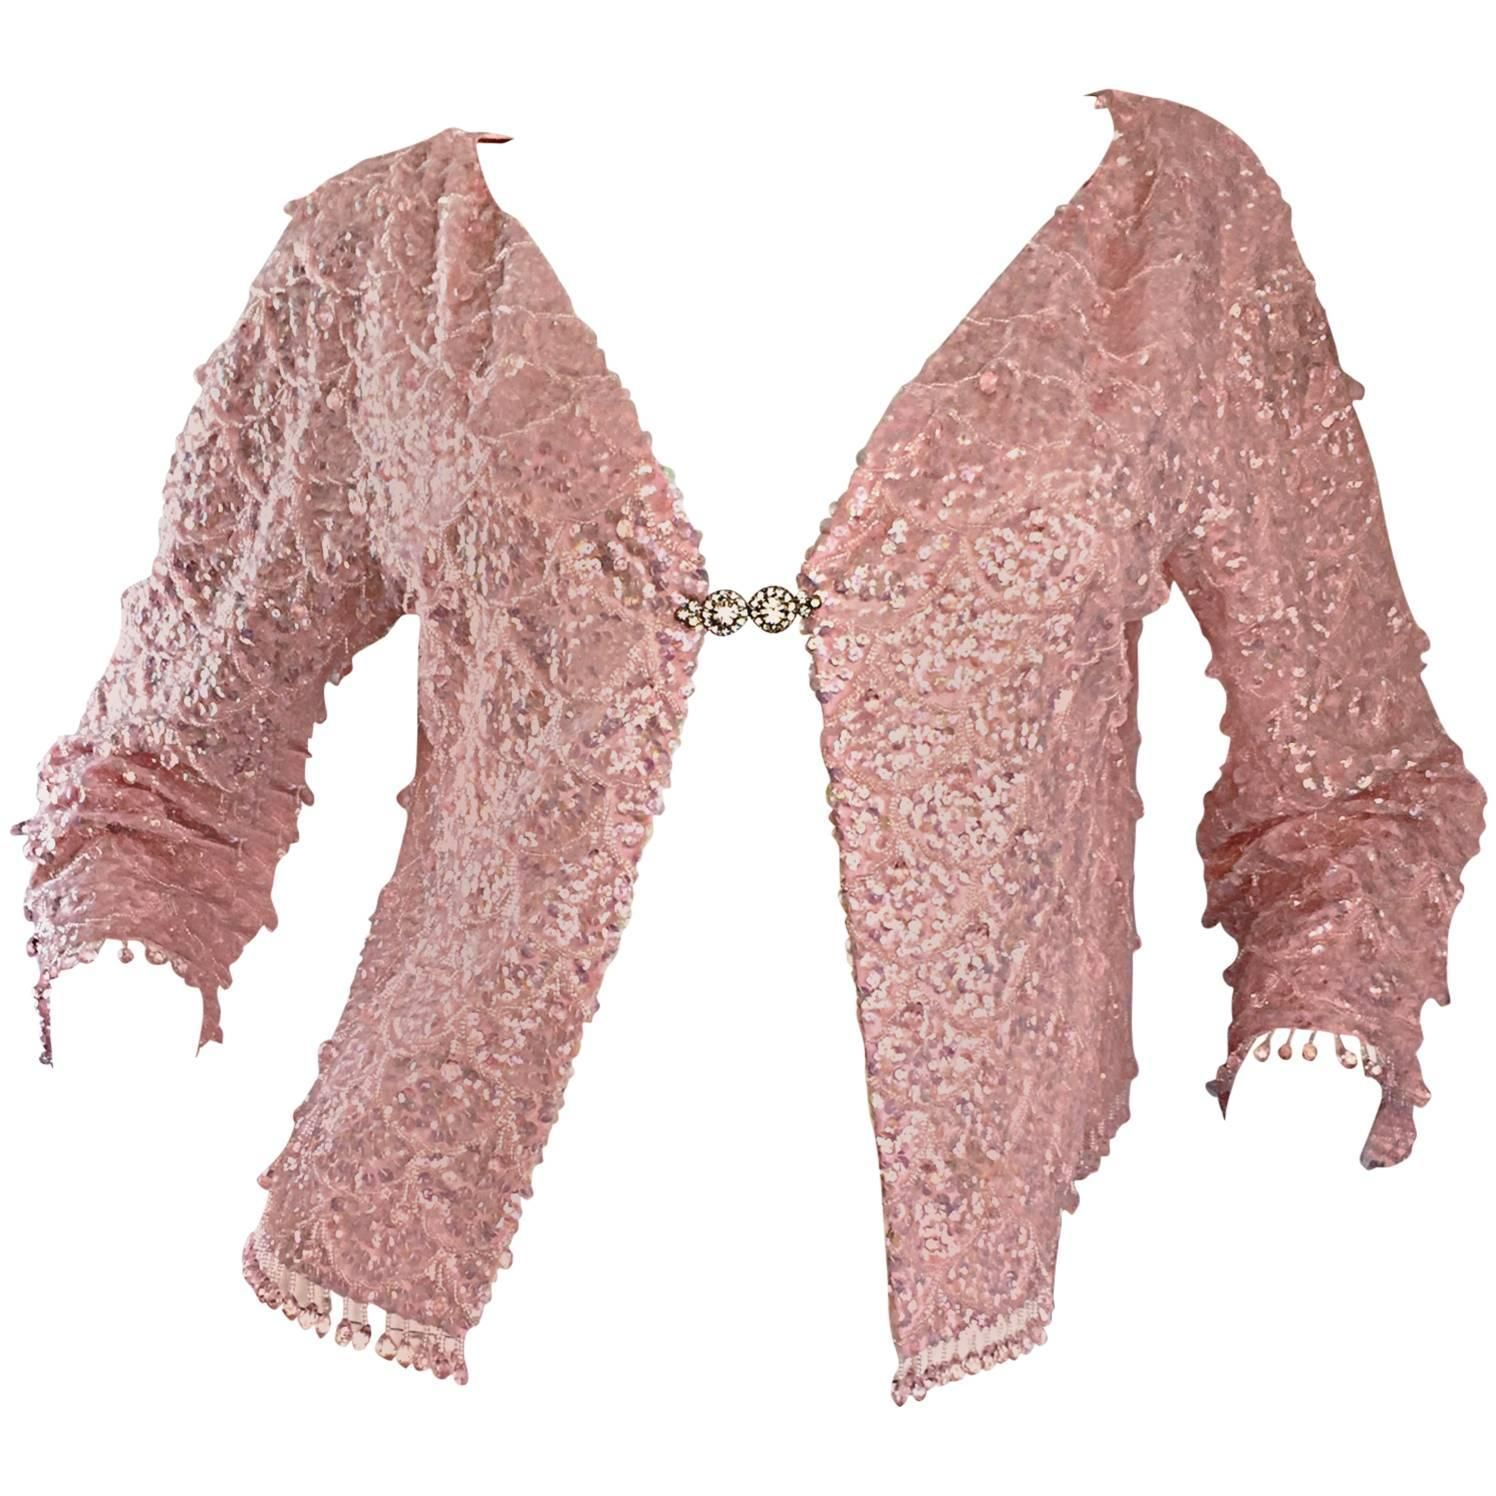 b6cd3d44 Beautiful 1950s Light Pink Silk Sequin Beaded Silk Rhinestone Jacket  Cardigan | From a collection of